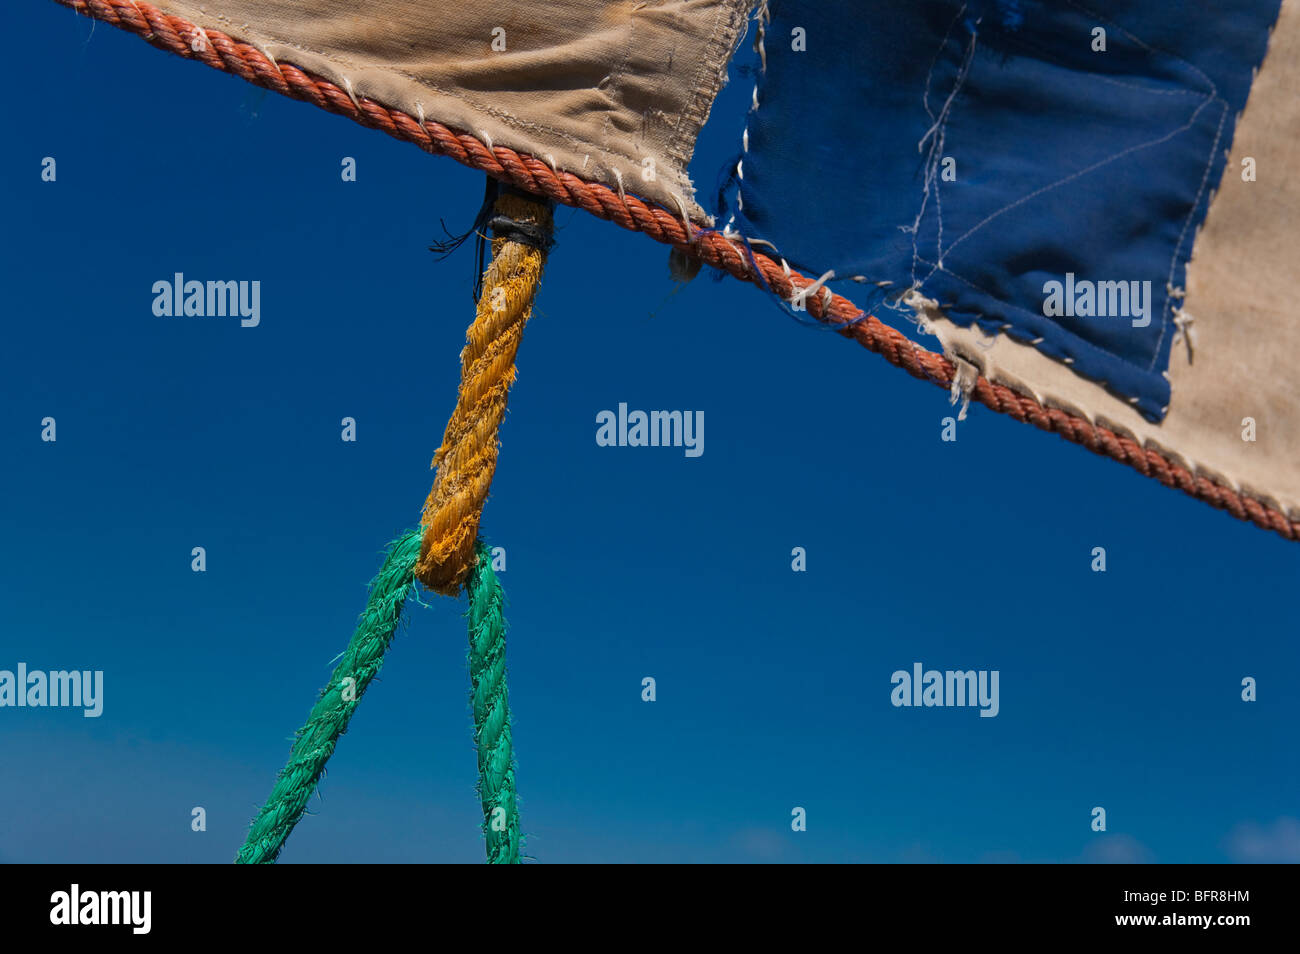 Colourful rope attached to sail - Stock Image